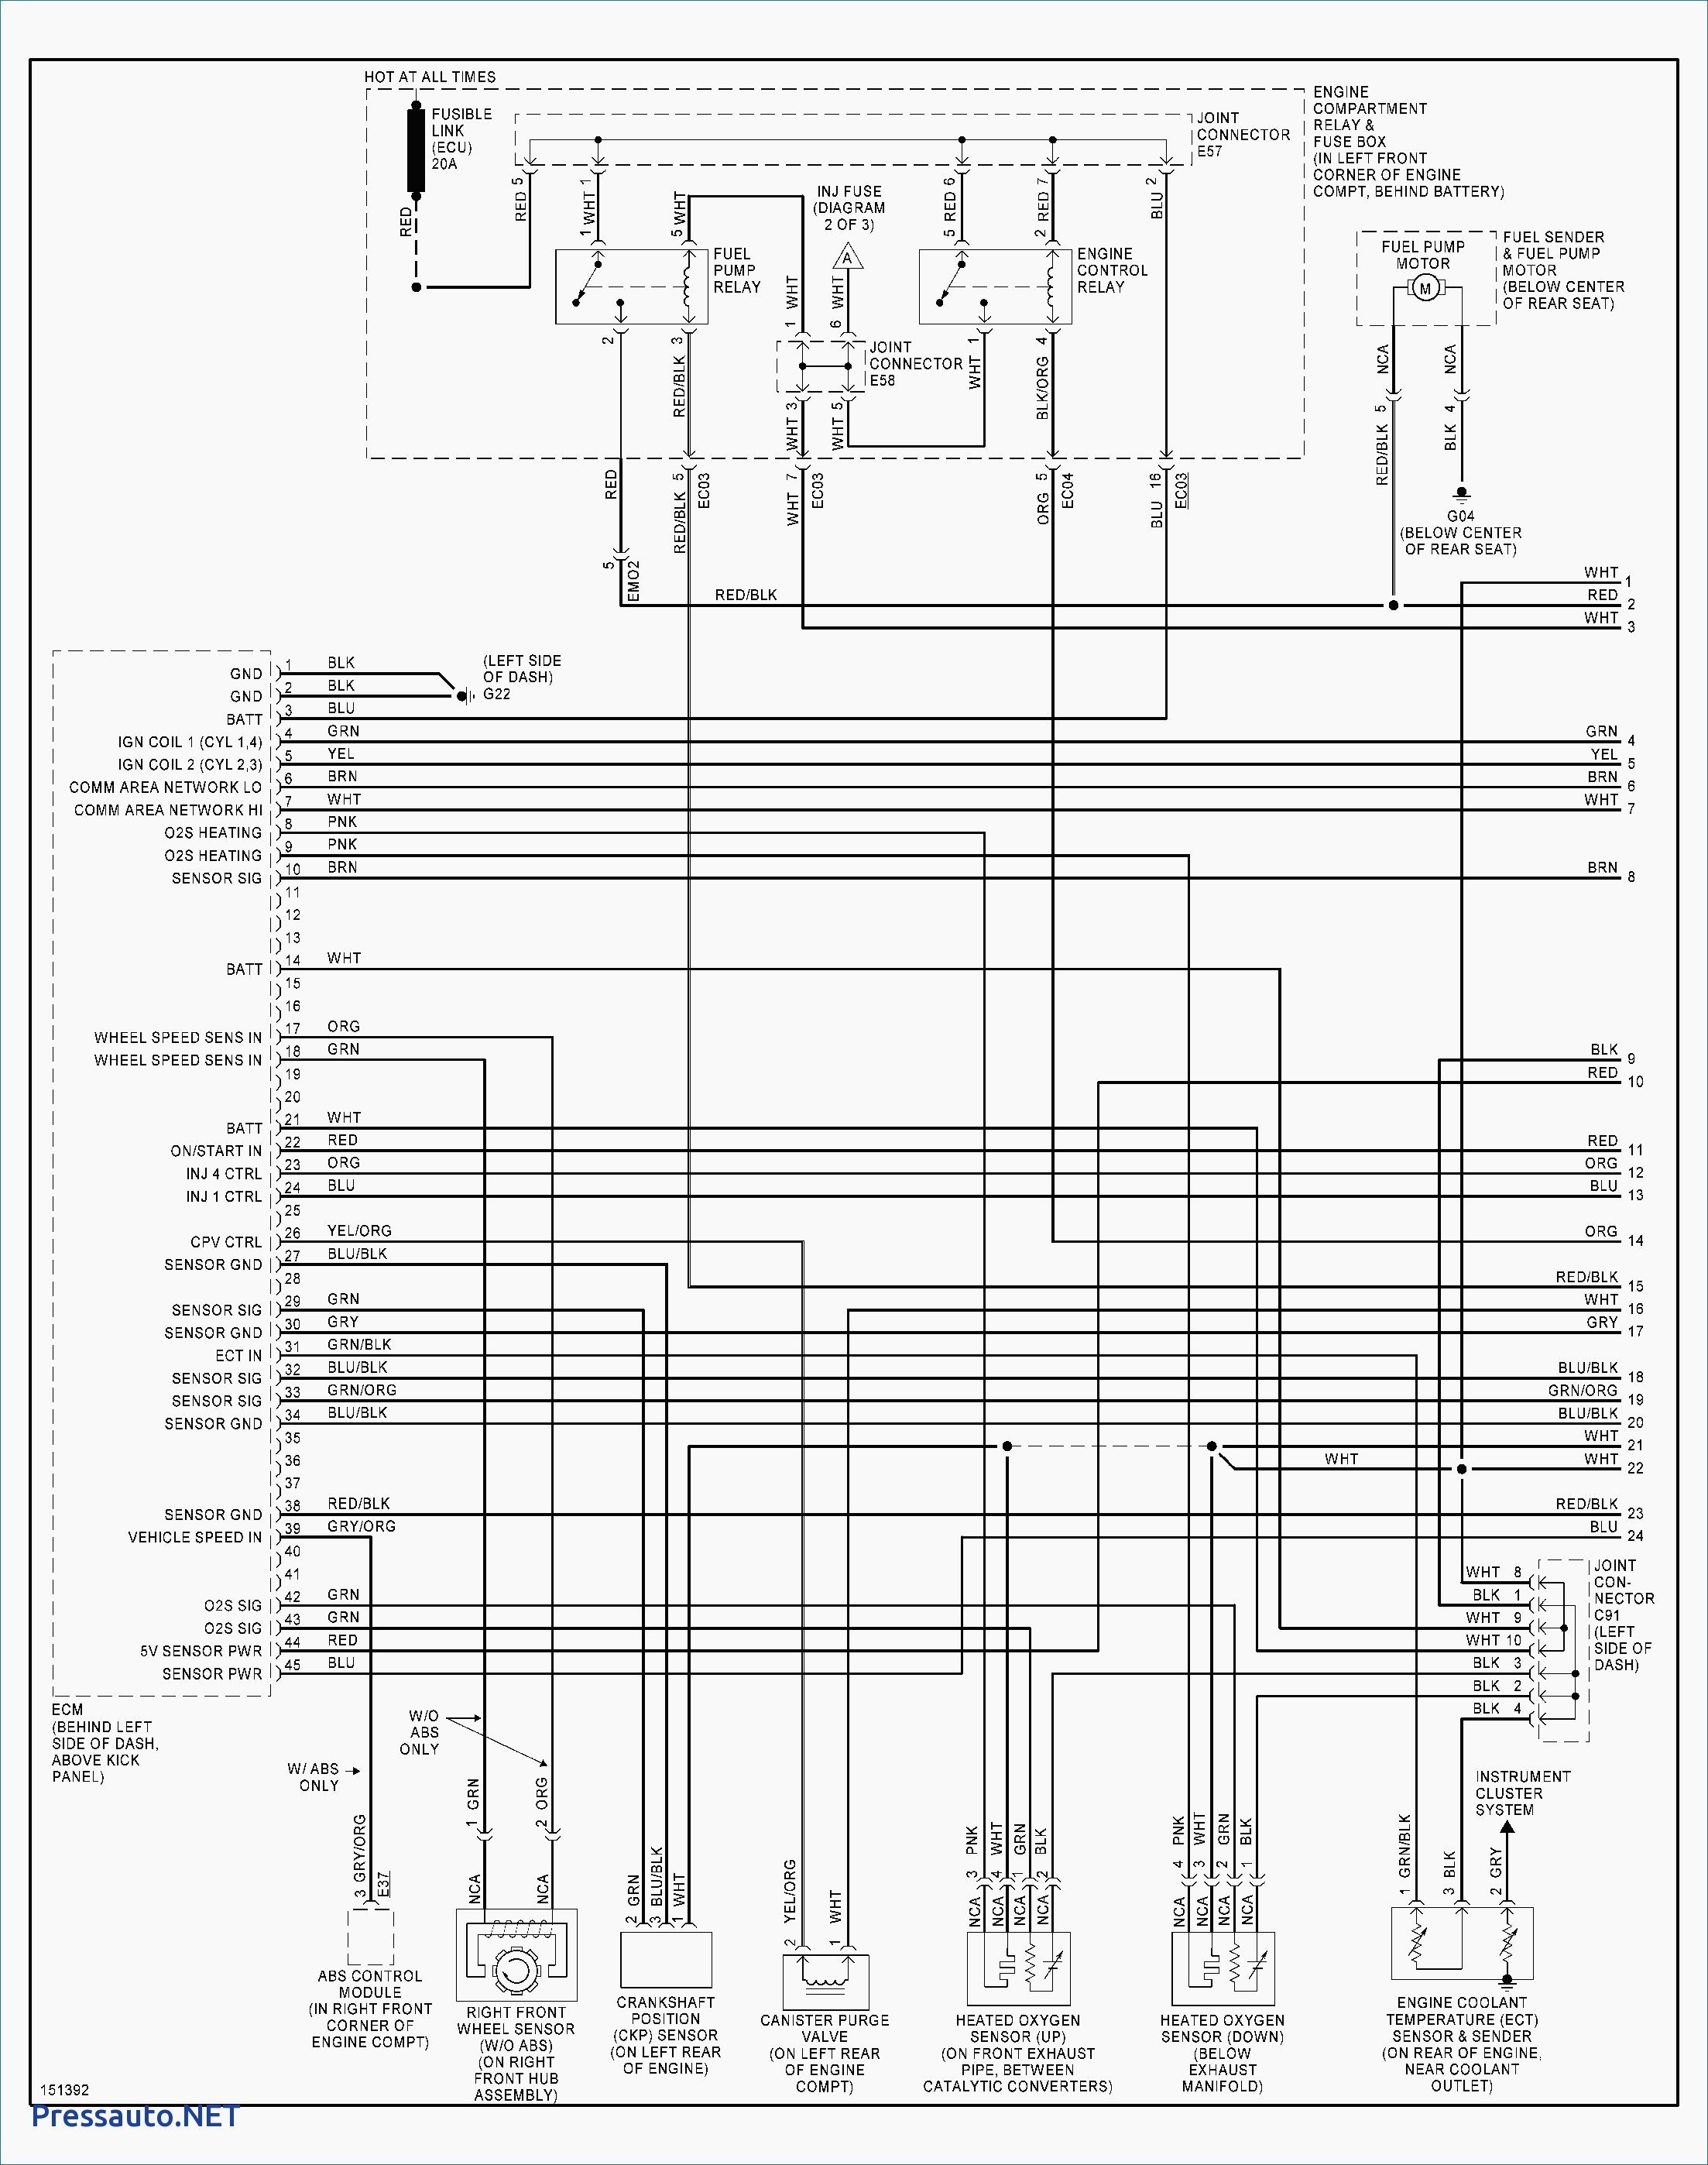 DIAGRAM] Wiring Diagrams Hyundia Exel FULL Version HD Quality Hyundia Exel  - SOADIAGRAM.FACCIAMOCULTURISMO.IT | Hyundai Accent X3 Wiring Diagram |  | Diagram Database - facciamoculturismo.it